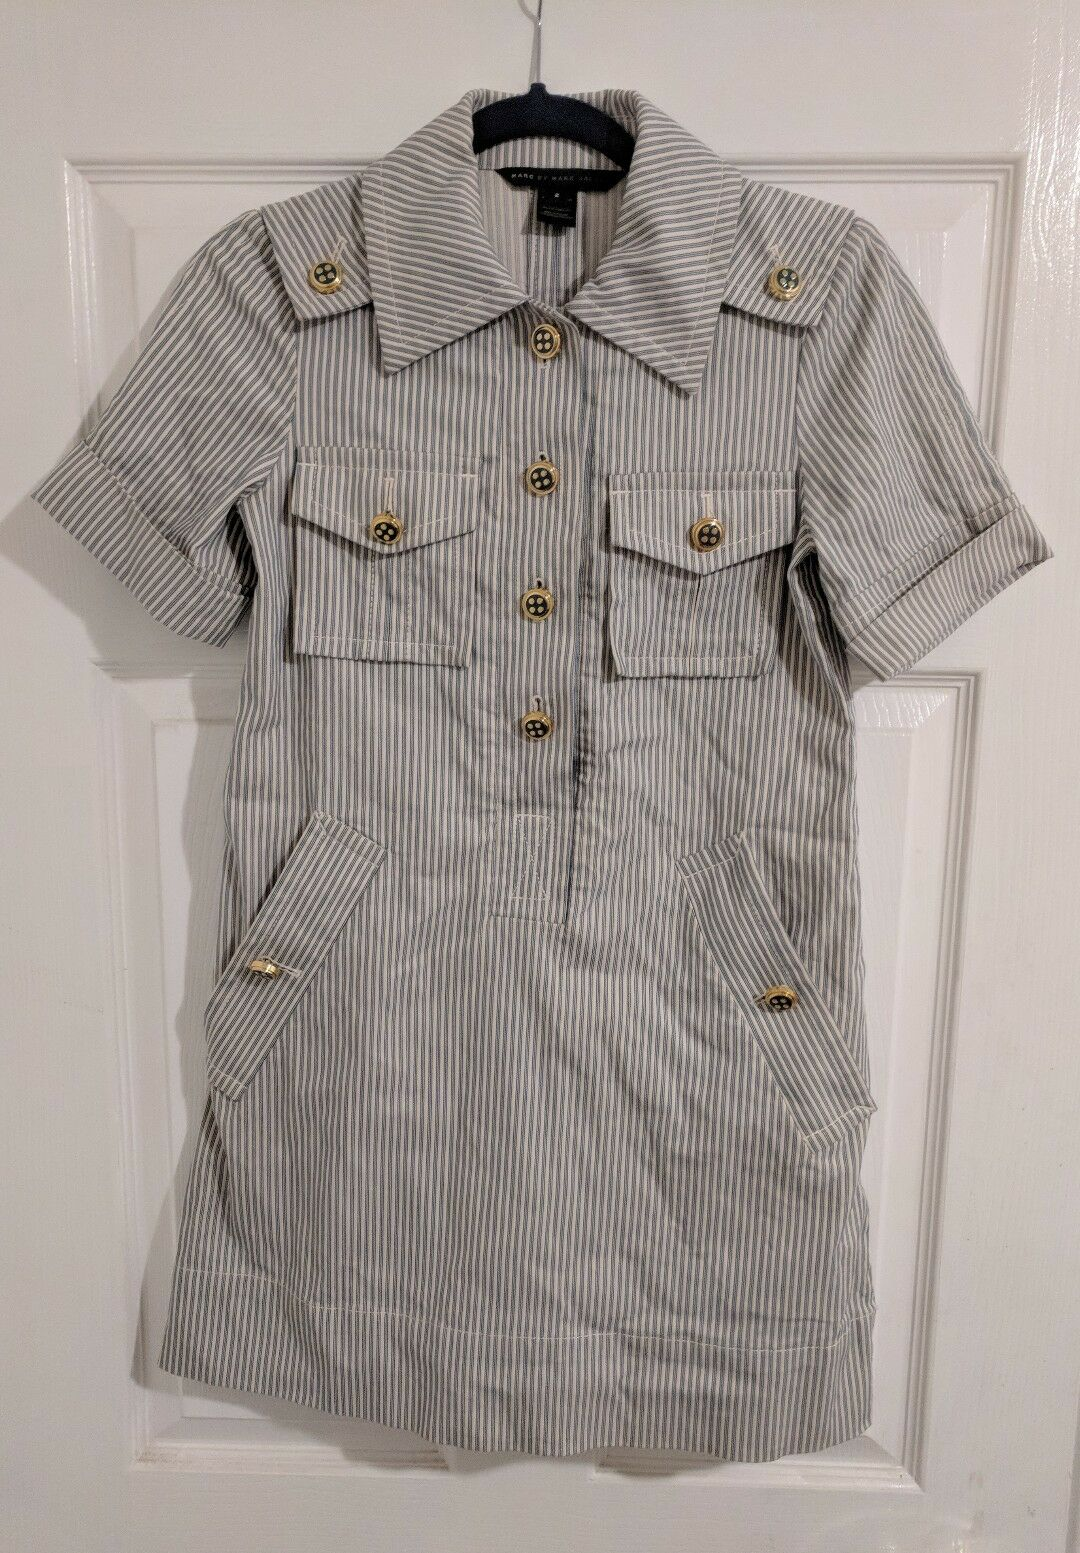 Marc by Marc Jacobs Dress 2 Striped Nautical Cotton Blend bluee Cream